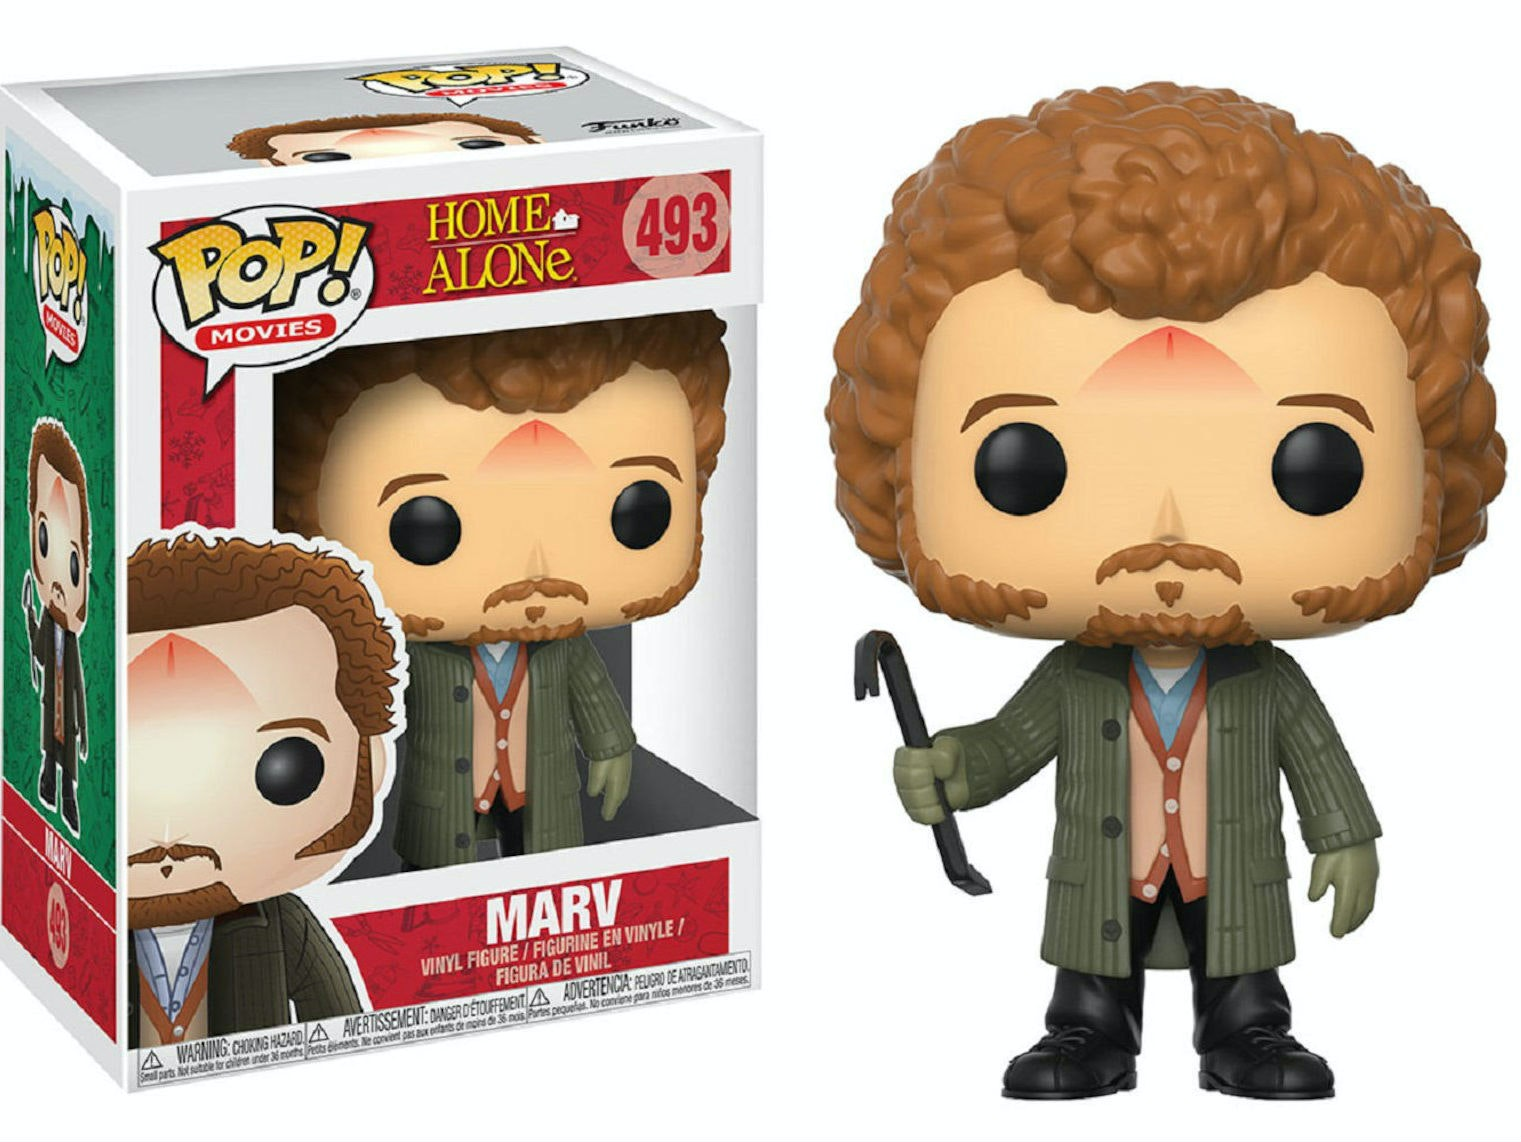 This Funko Pop celebration of the Wet Bandits